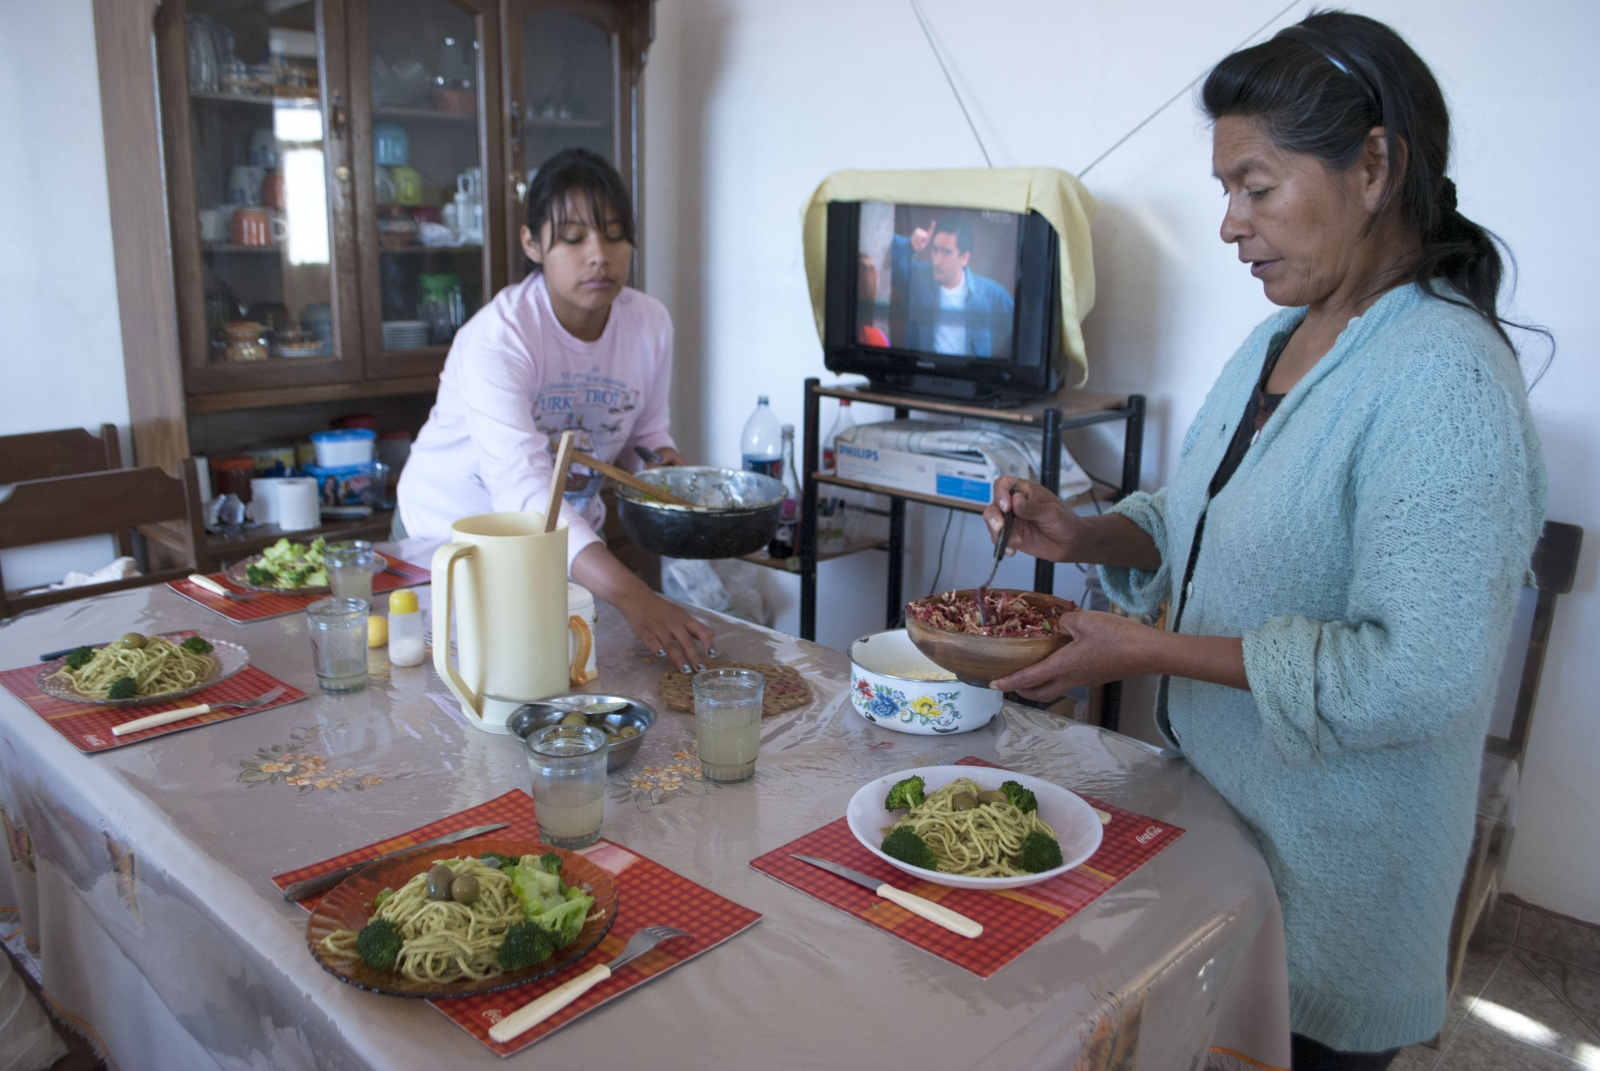 "Irene and her daughter prepare dinner with pesto and broccoli harvested from their garden. She said, ""Now we feel happy. We have a place to live, to be calm and to be at peace. If my daughters want to bring their friends over, they can do that without problems. We couldn't do that before."" Sivingani, Cochabamba, Bolivia, 2014."